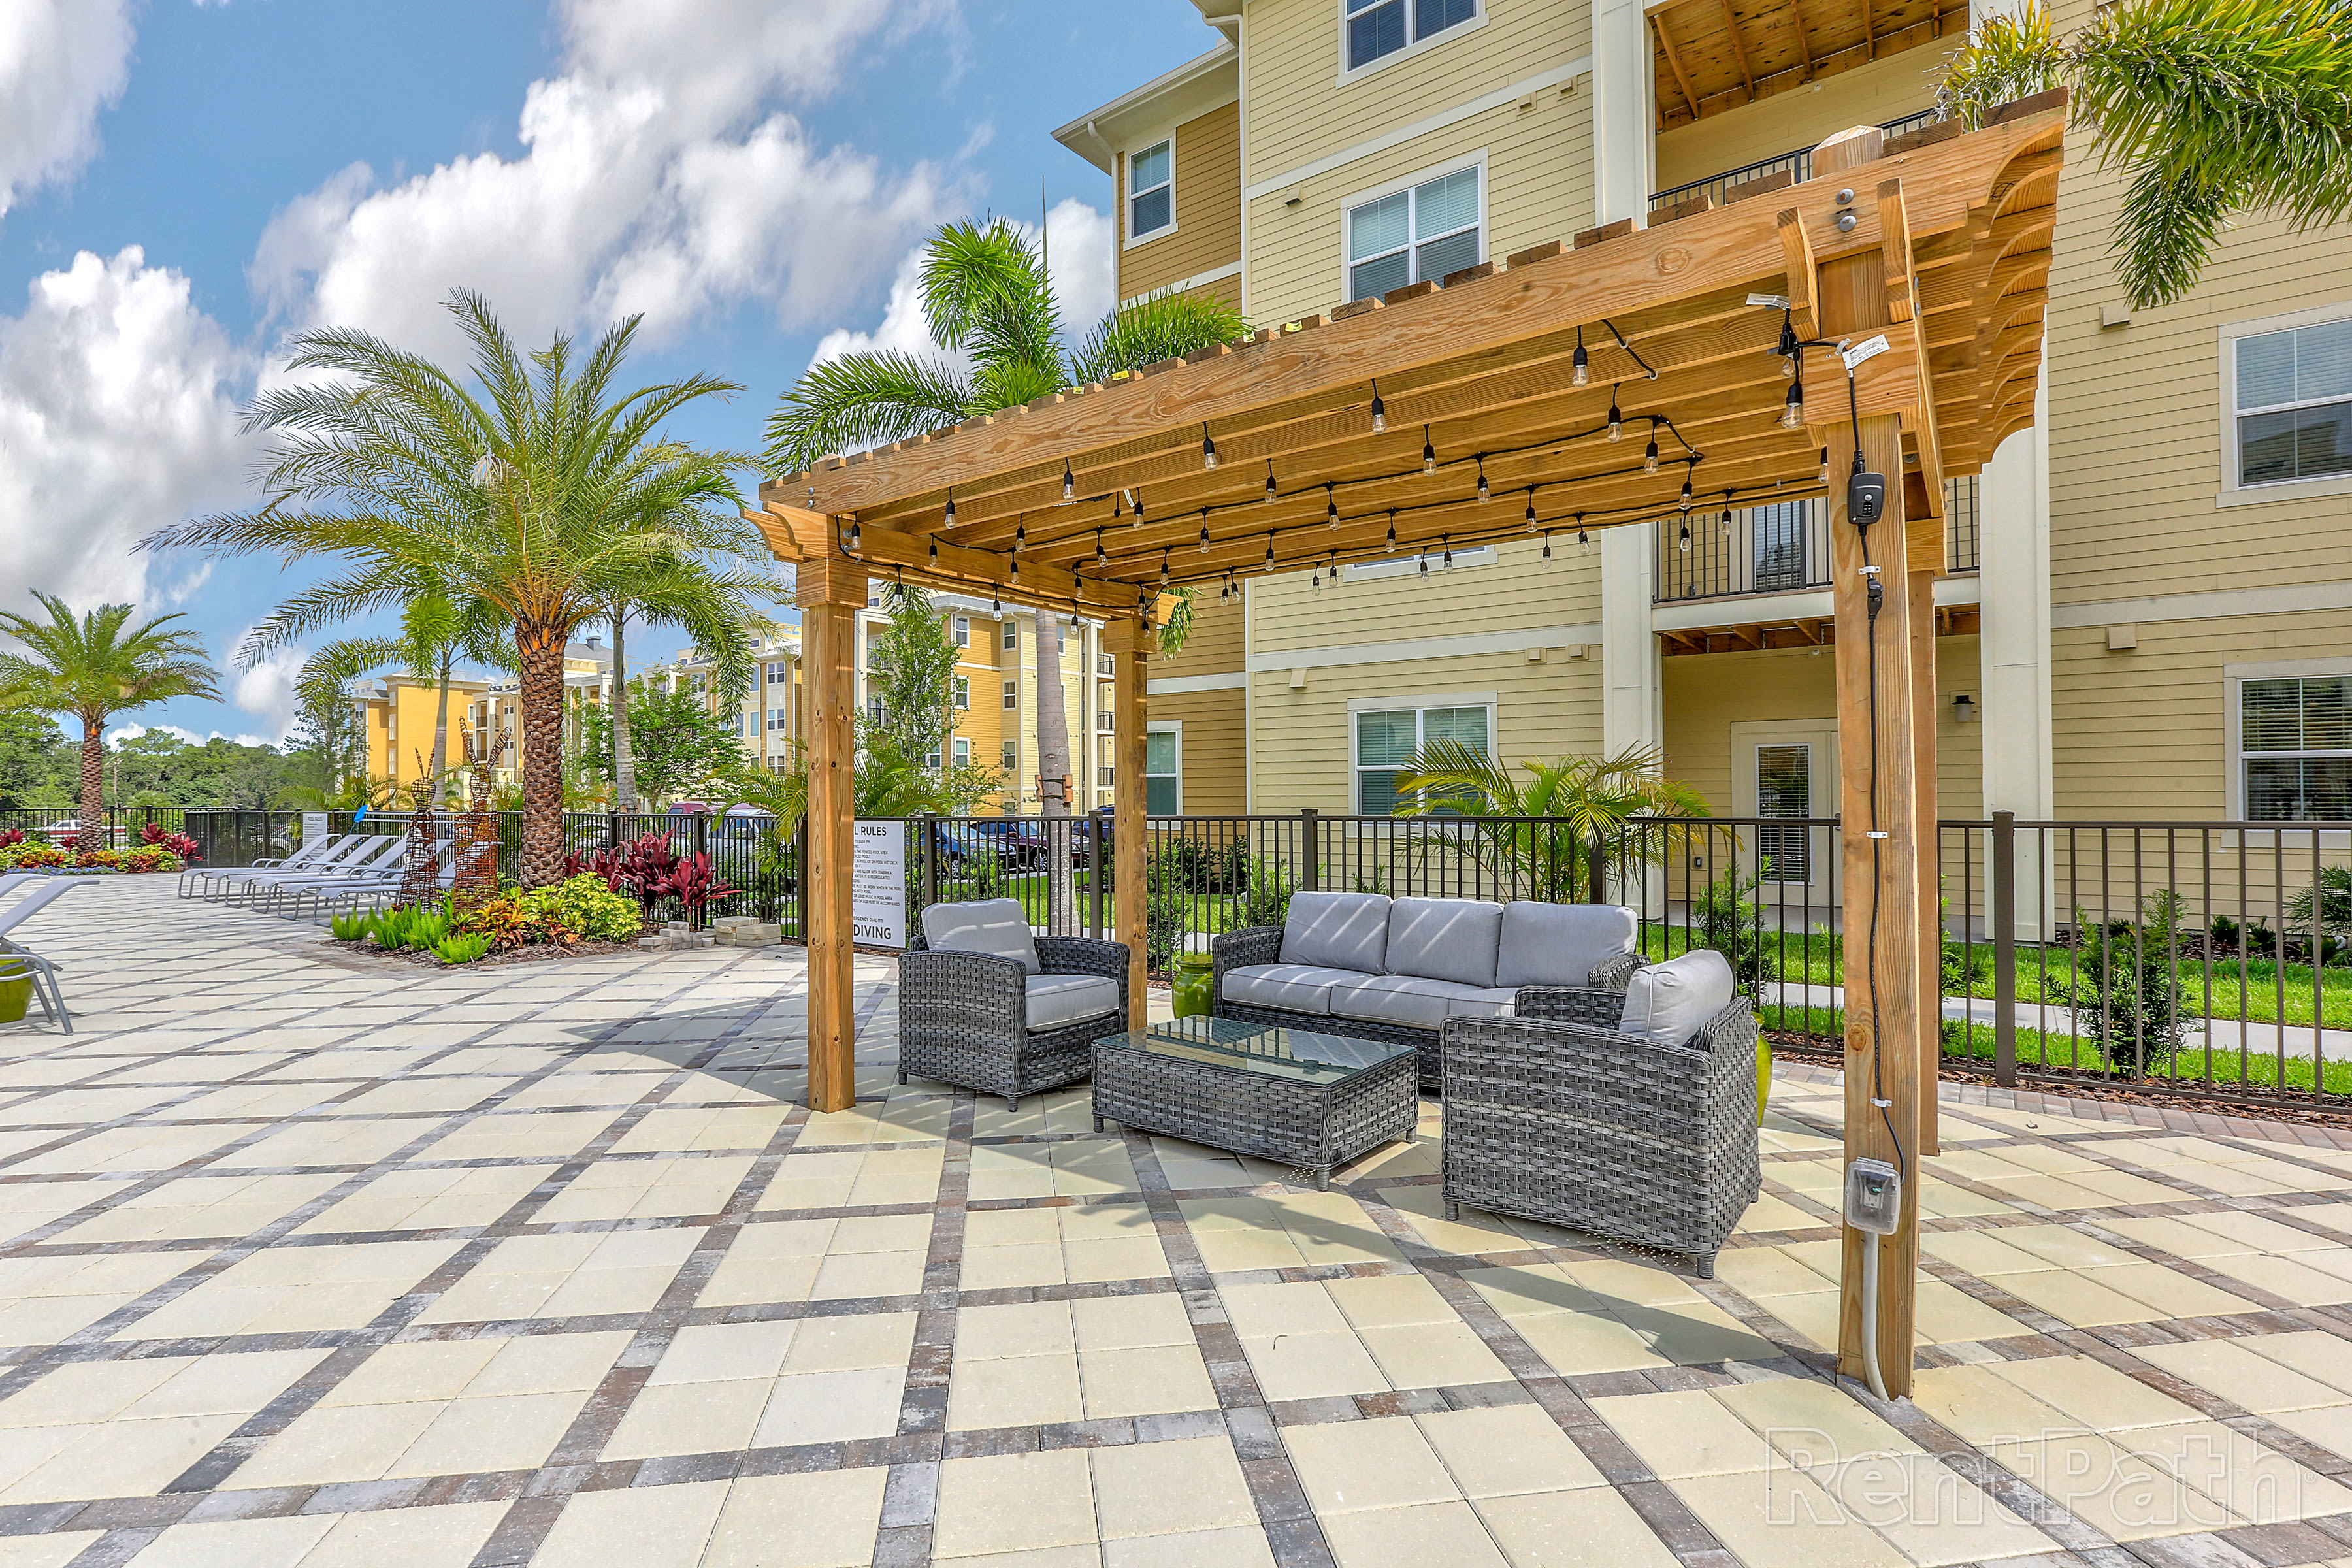 Outdoor sitting area at Lola Apartments in Riverview, FL